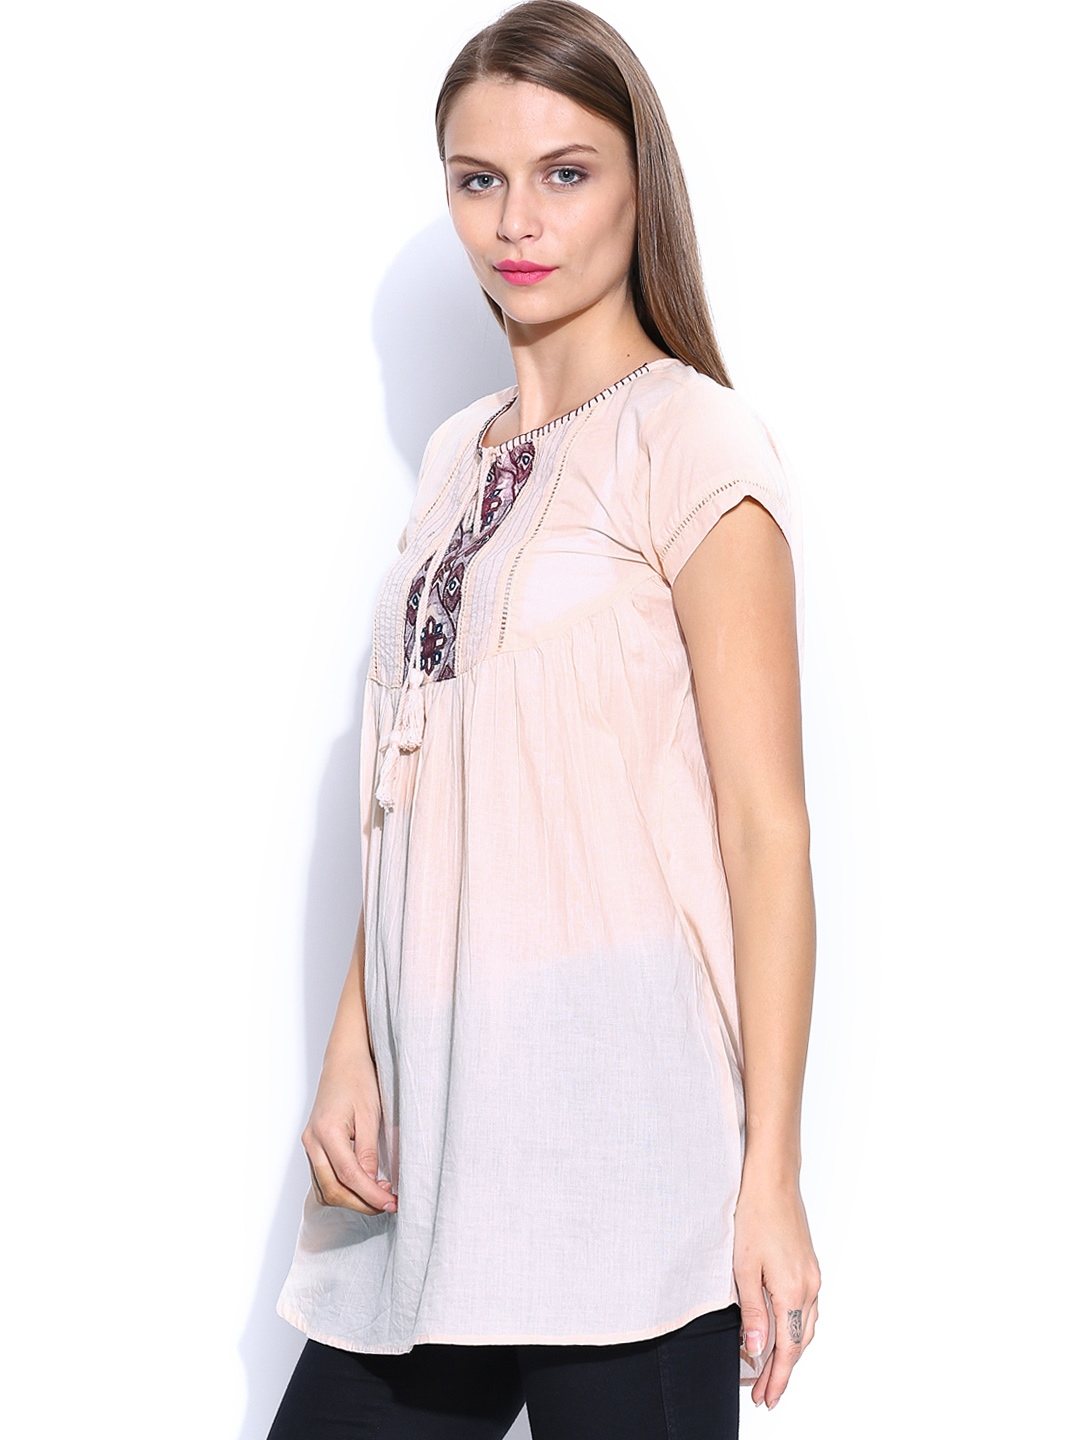 Simlu Baby Pink T Shirt For Women Jersey Short Sleeve Plain Casual Fitted Tee Top Best Offers · Exclusive Deals · Lowest Prices · Compare Prices.